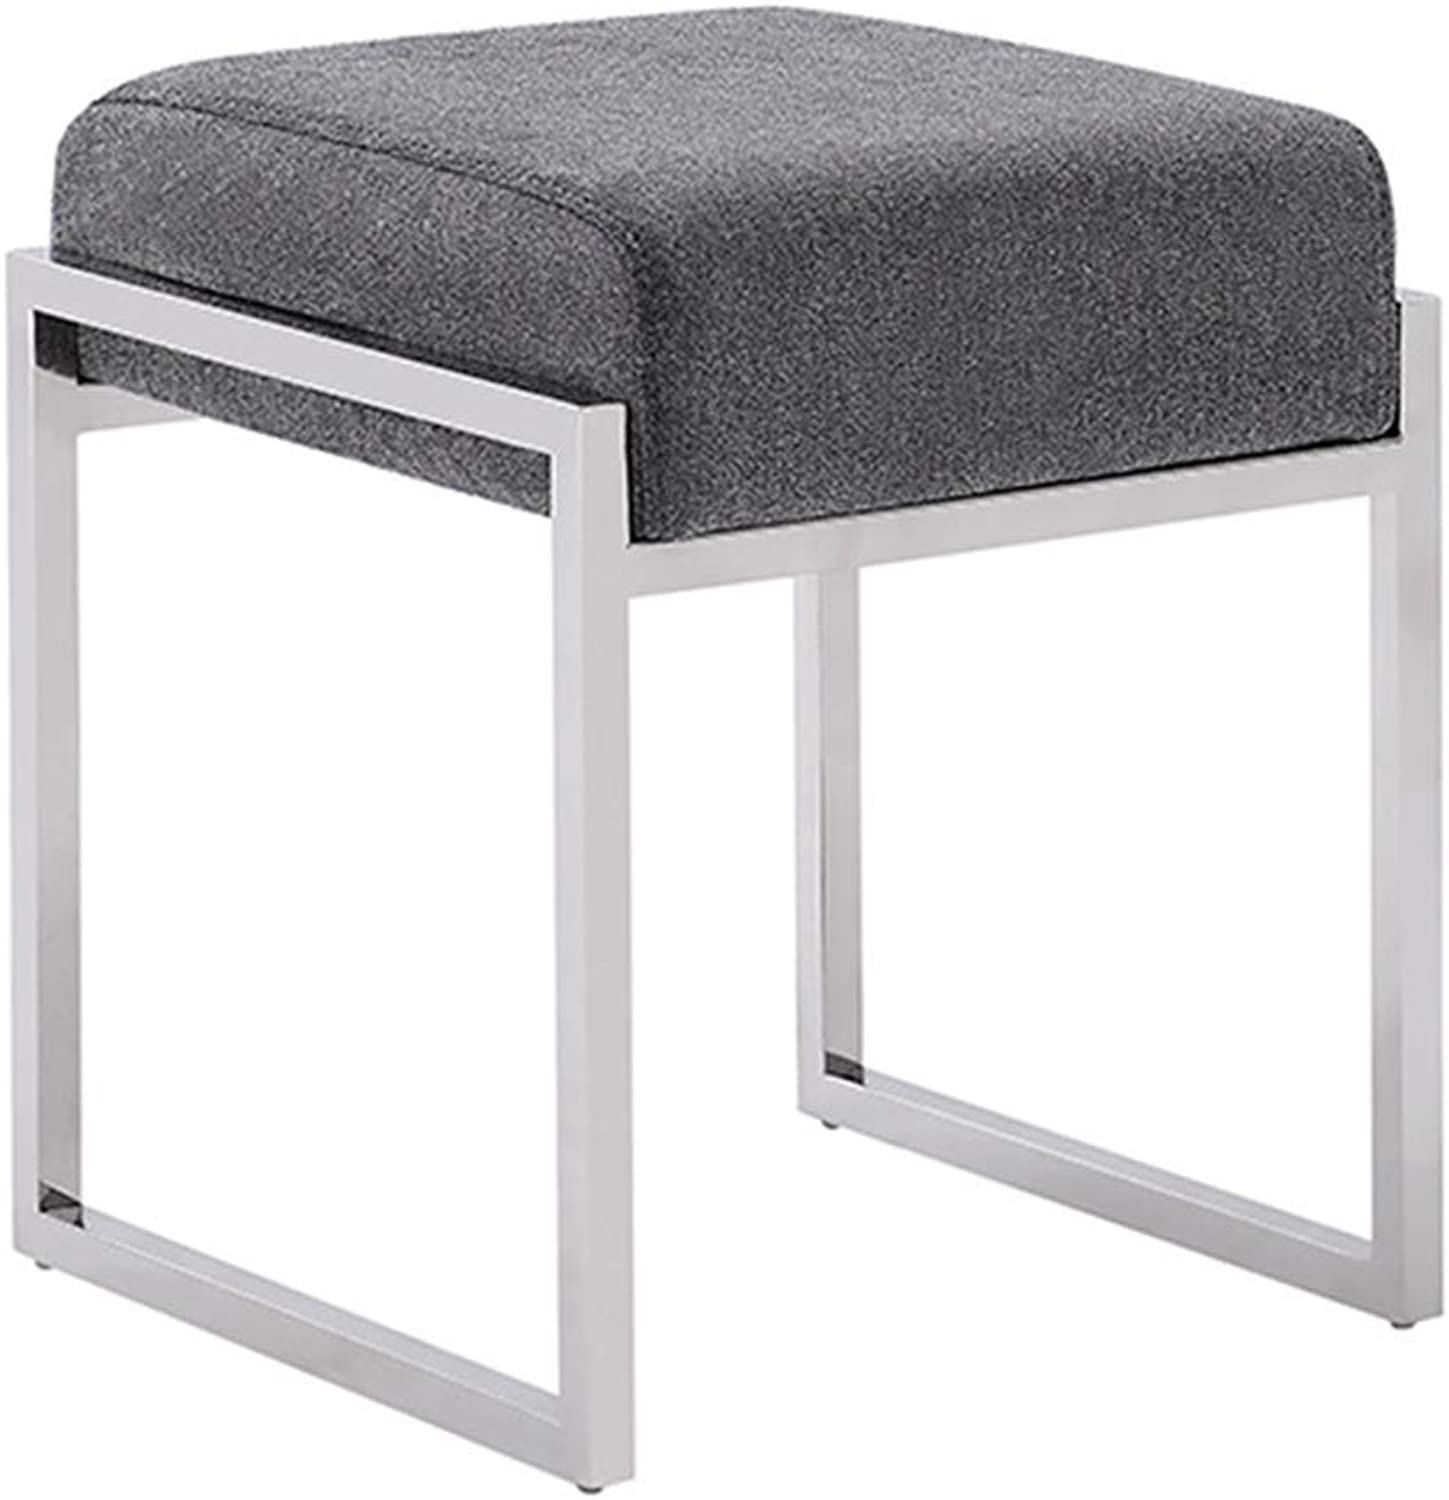 Footstool Metal Cloth Doorway Change shoes Bench Simple Bedroom Dressing Stool, 8 colors GFMING (color   E, Size   370x425x450mm)